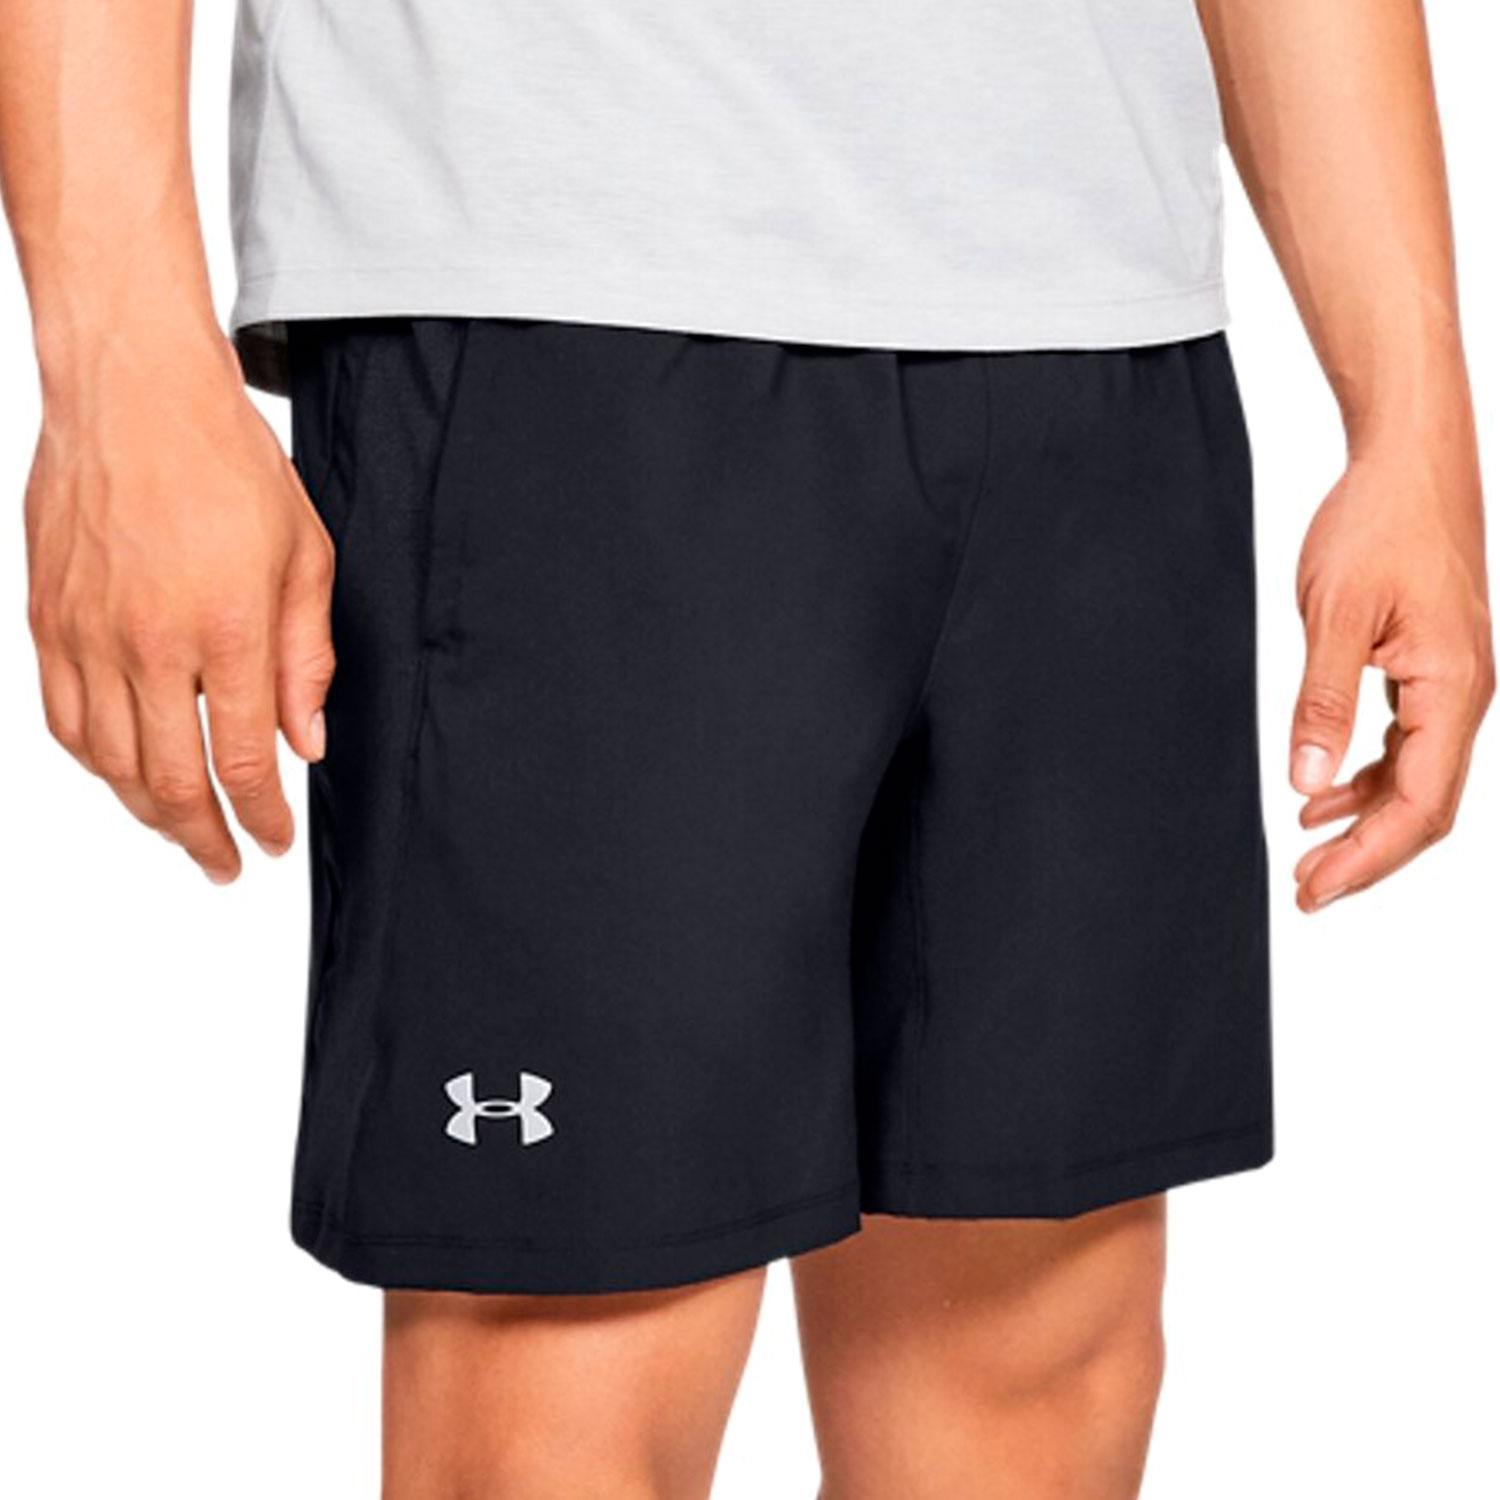 Under Armour Launch Stretch Woven 2 in1 7in Shorts - Black